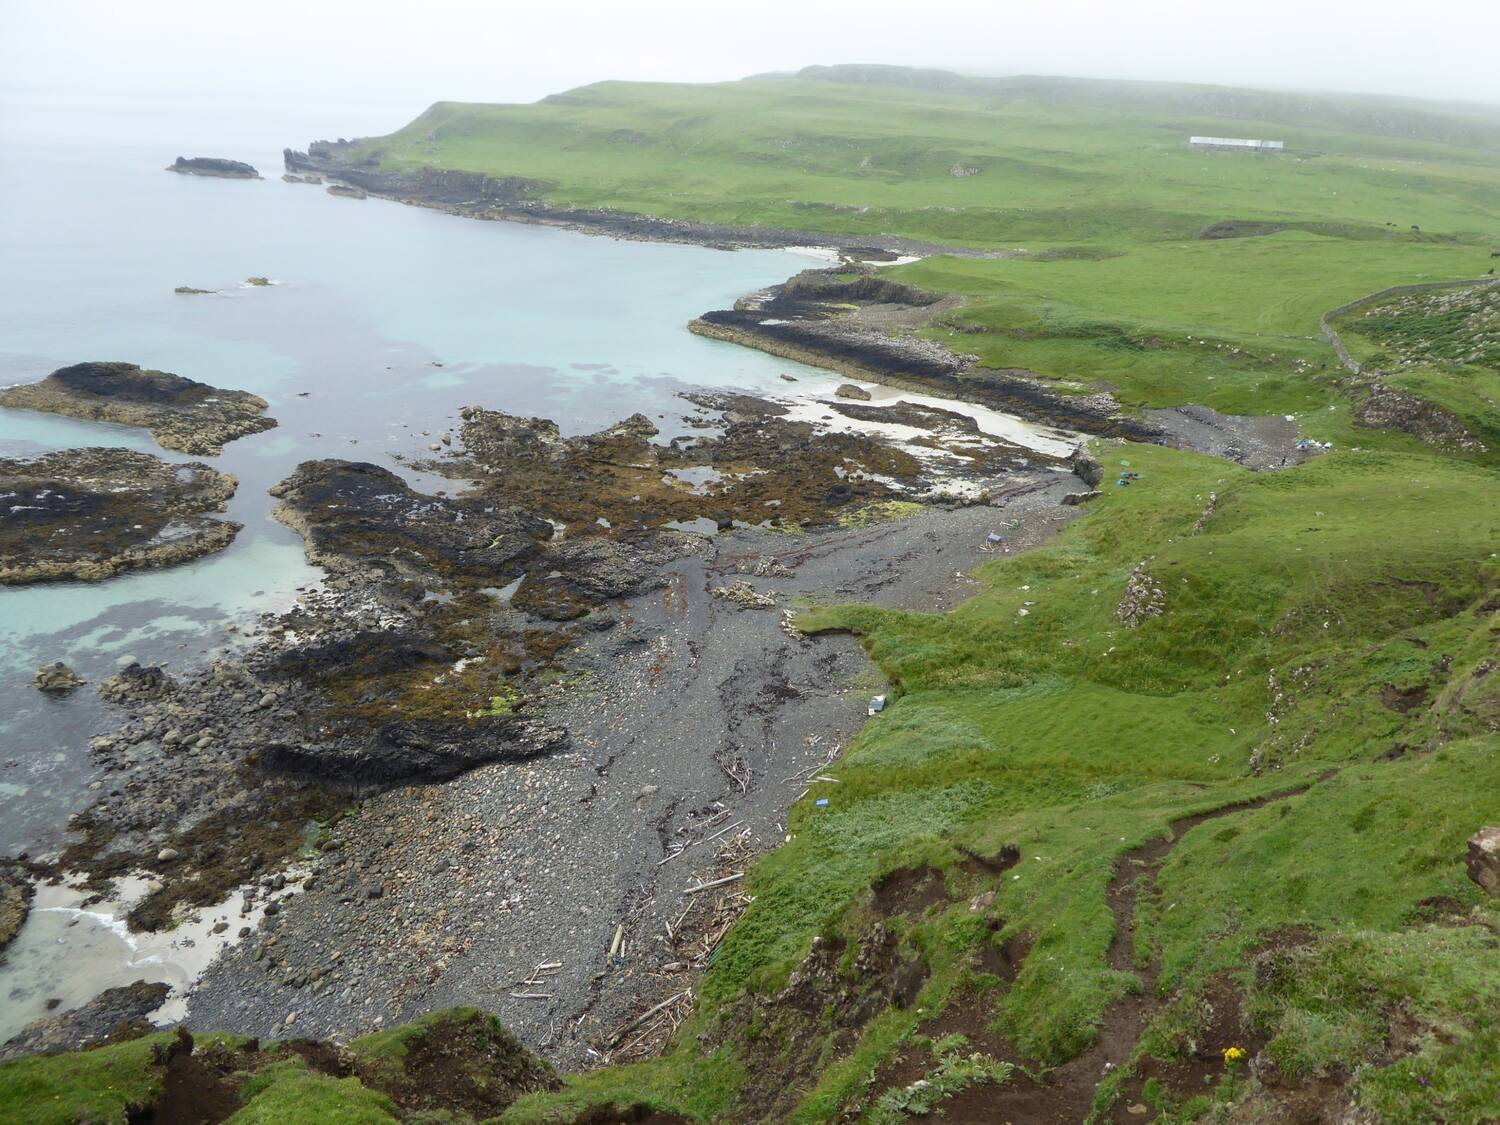 An aerial view of a section of coastline on Canna